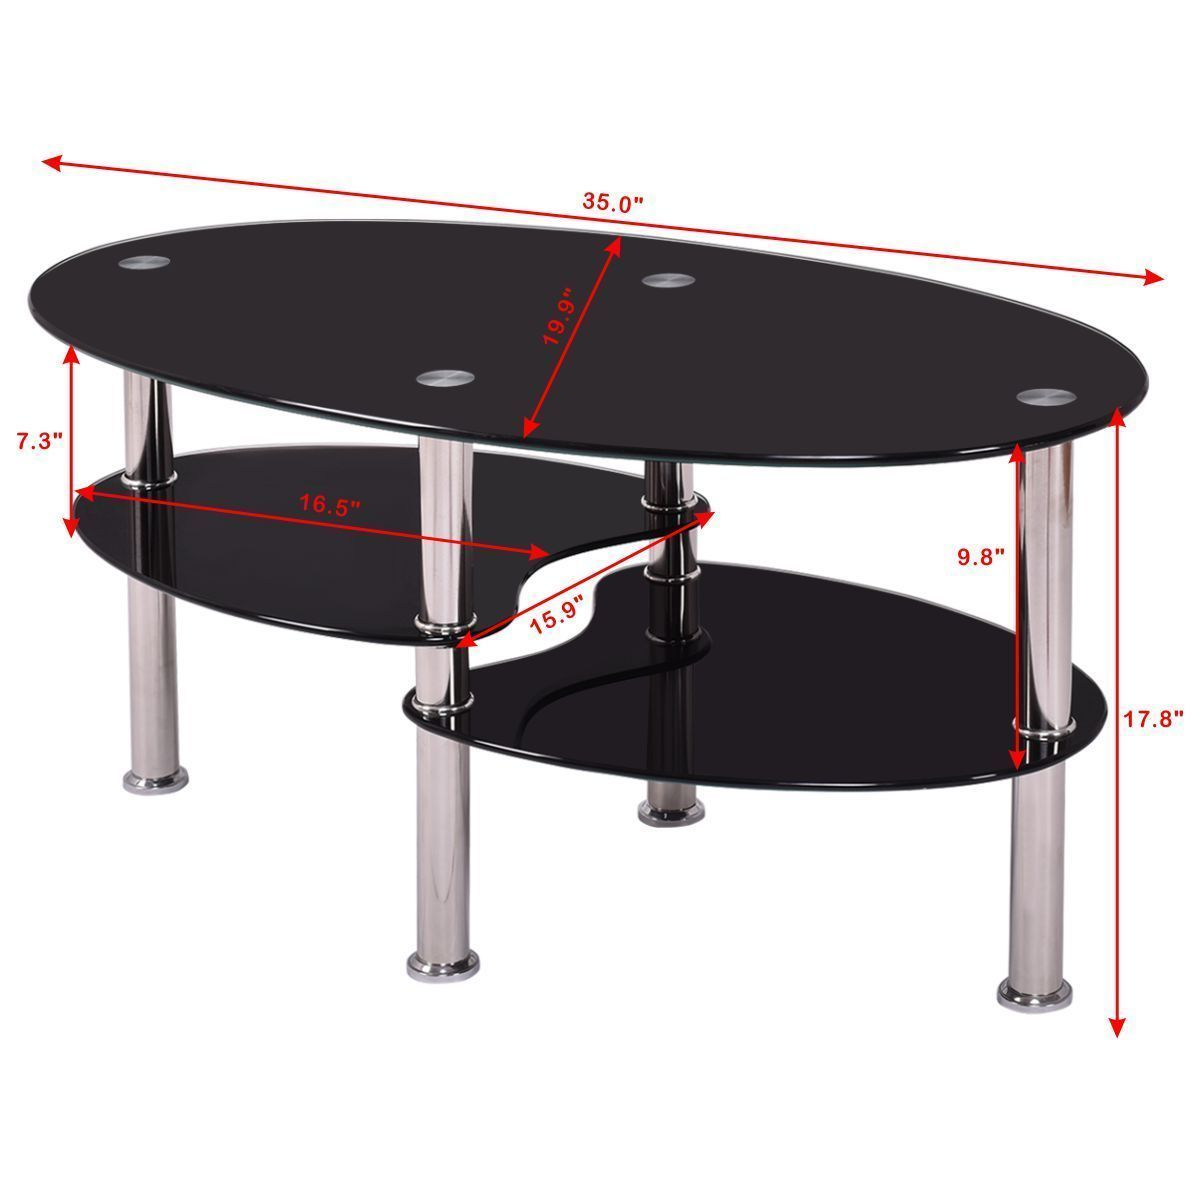 Glass Coffee Table For Sale On Ebay: New Black Glass Oval Side Coffee Table Shelf Chrome Base